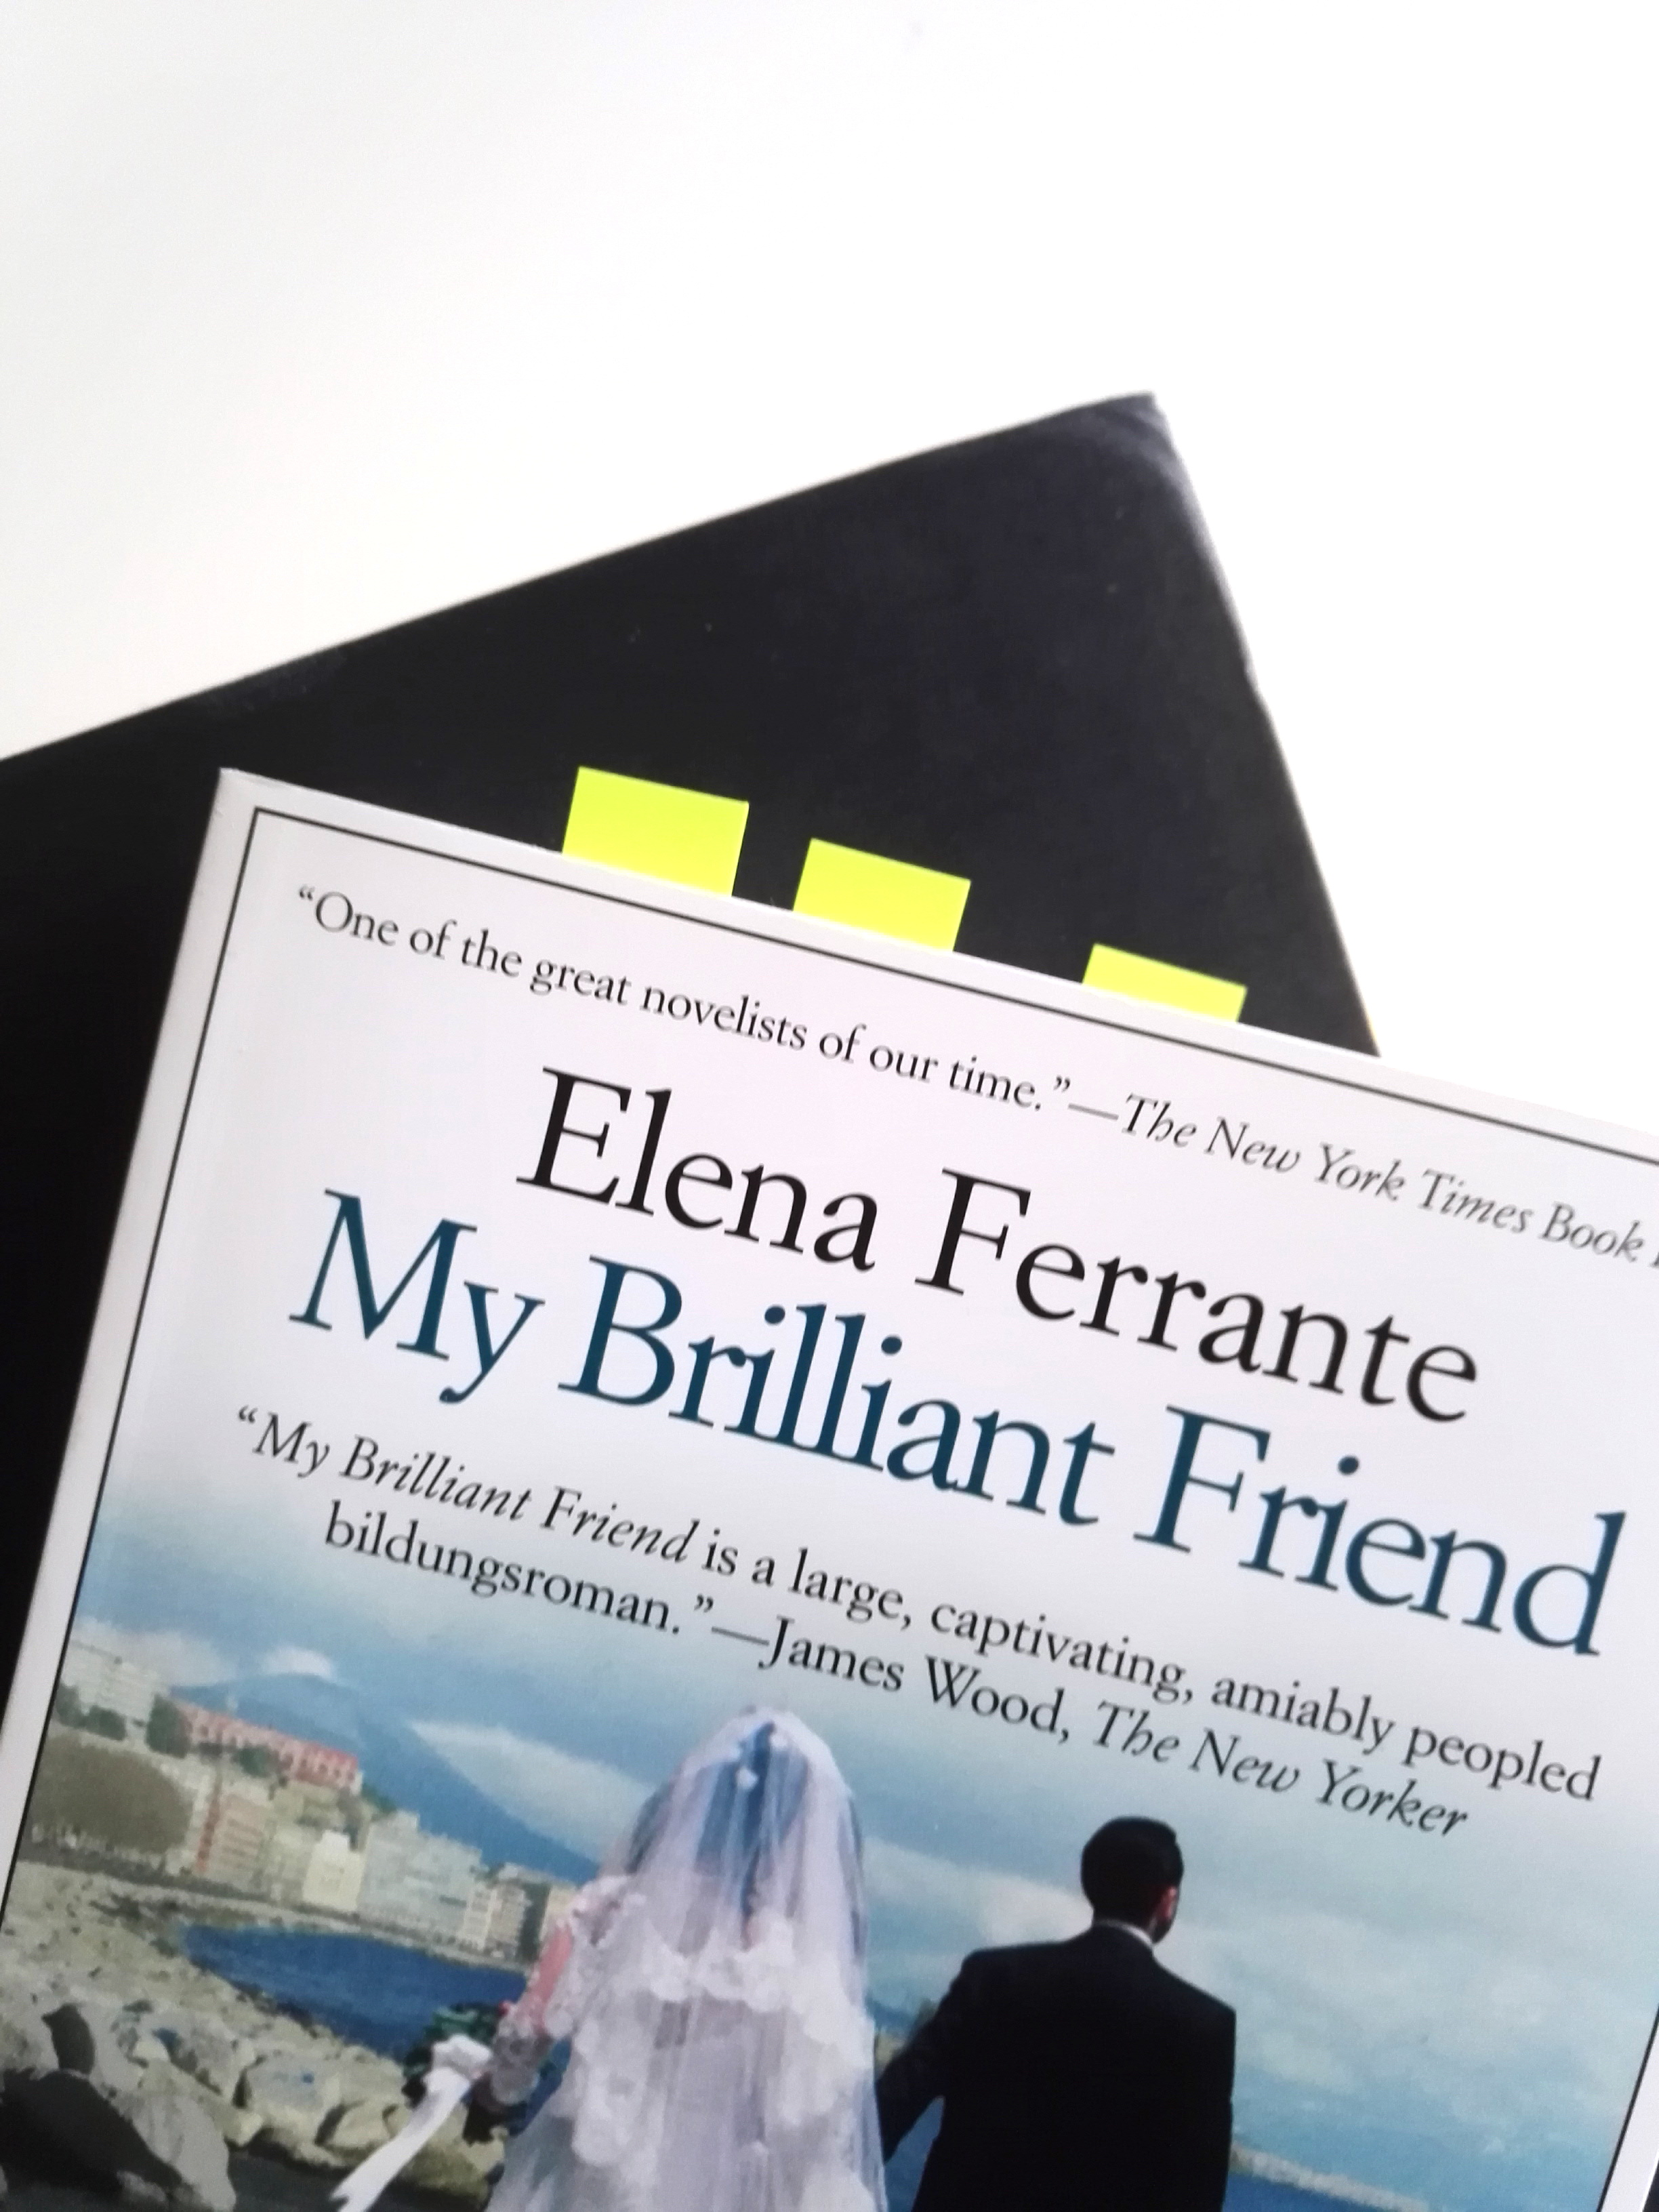 Readalong im März – #readingferrante